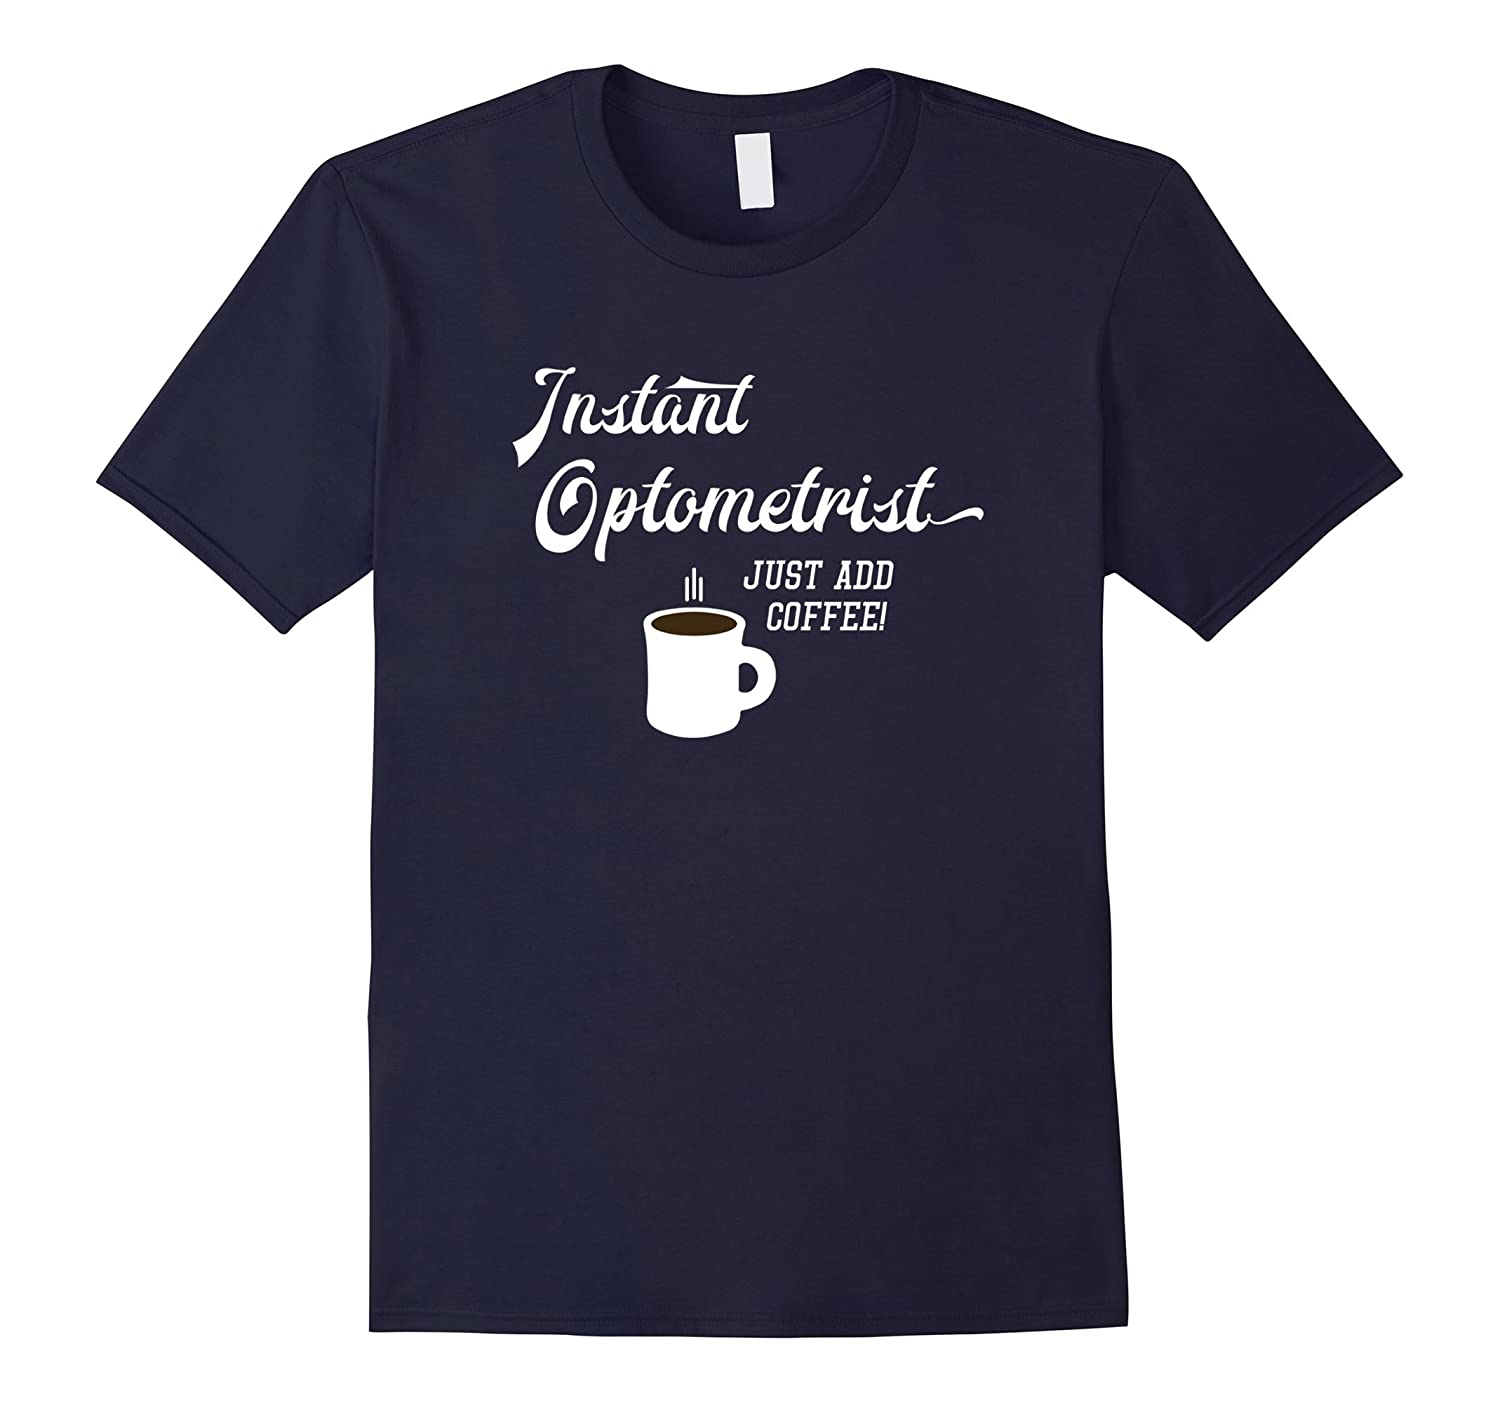 Funny Optometry Shirt - Instant Optometrist Just Add Coffee-TD